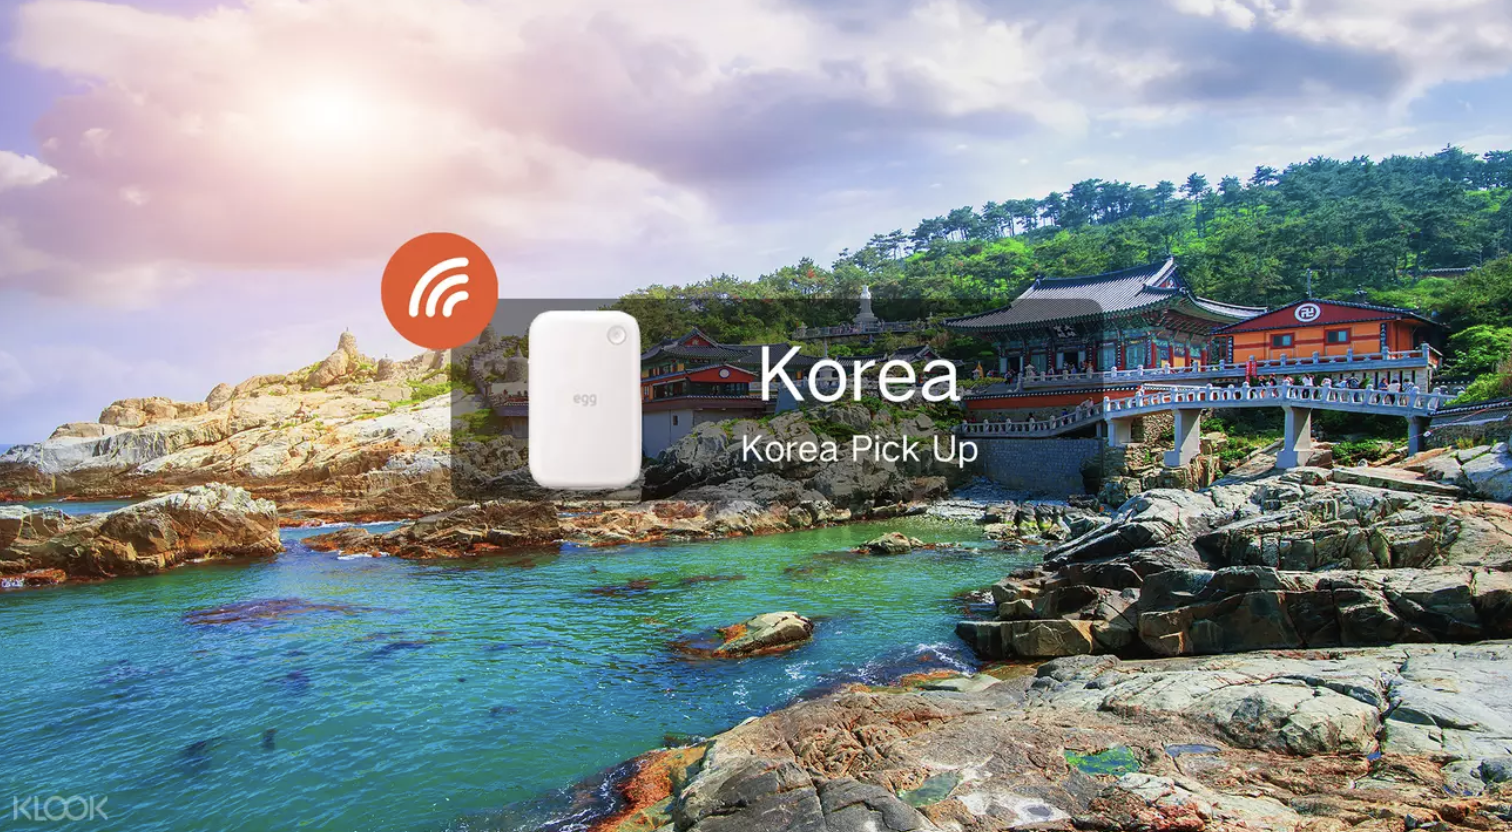 Deals for Seoul Trip Must-haves - Seoul Travel Planner